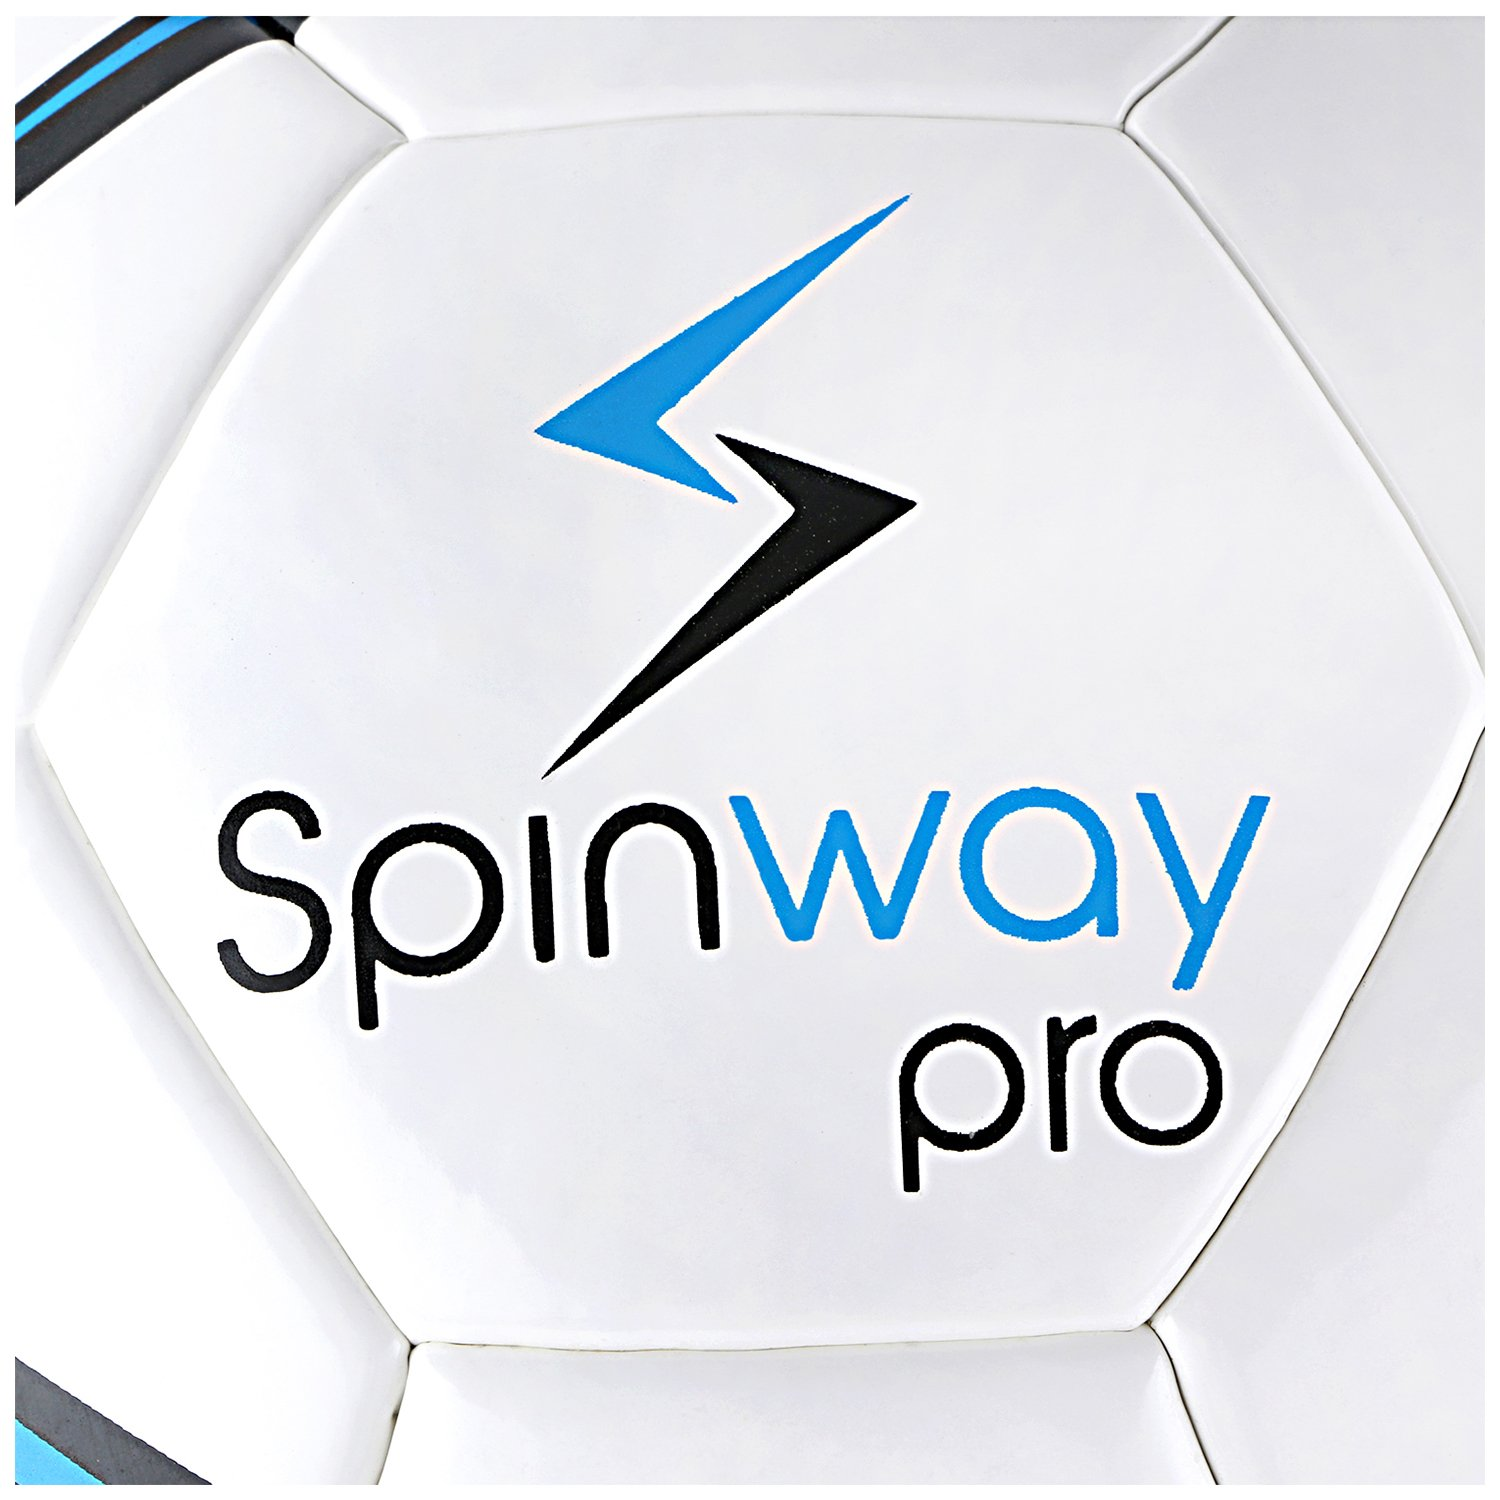 Spinway Football Pro Sw-500 for Professional Play,Water Resistant | (Blue) by Spinway (Image #5)